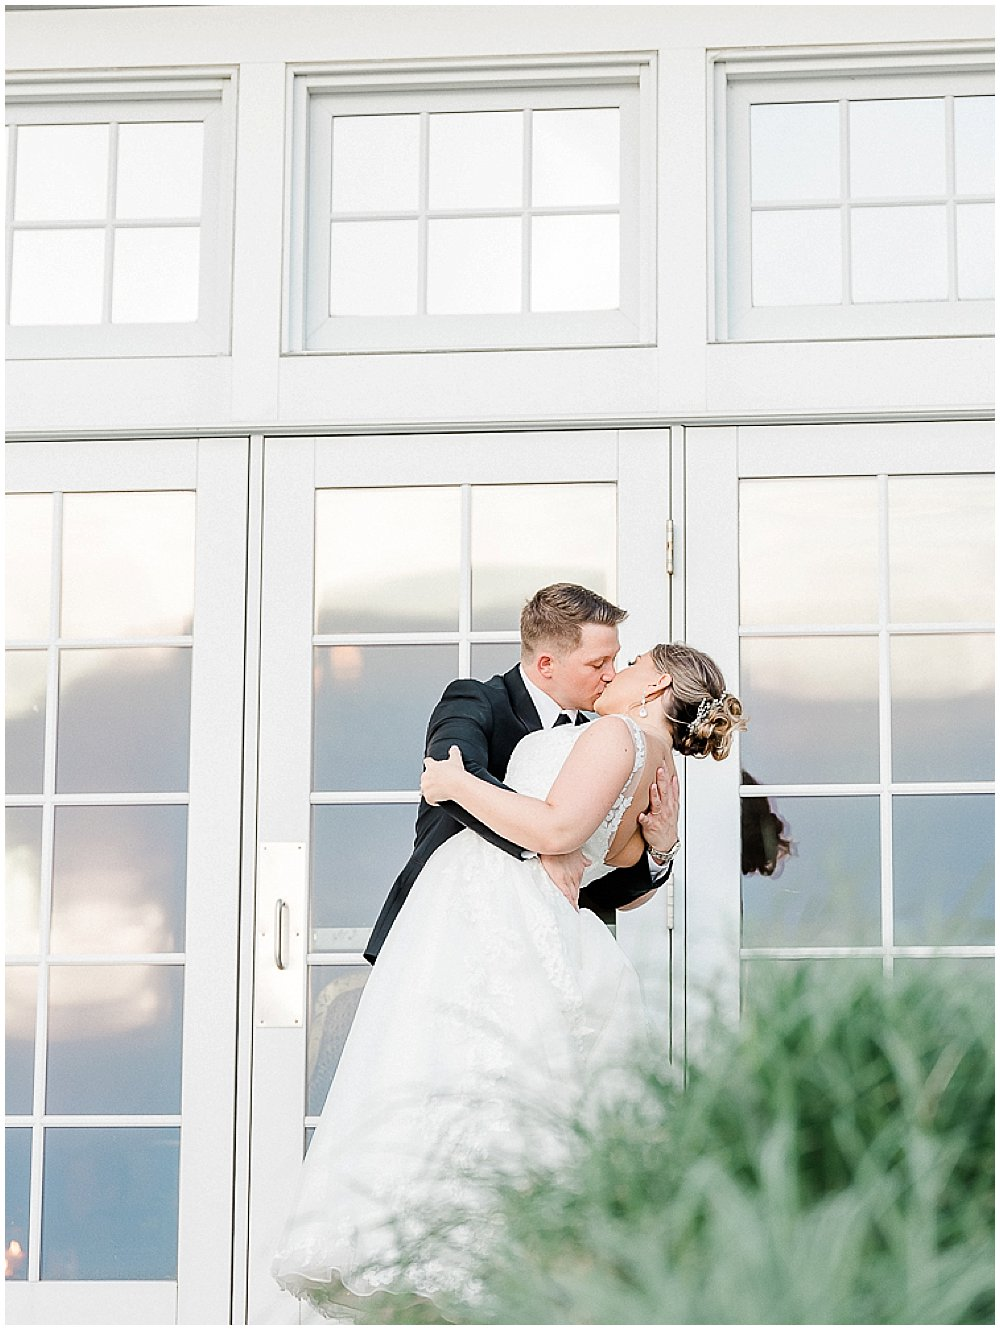 A black tie wedding at the Chesapeake Bay Beach Club on the Eastern Shore of Maryland.